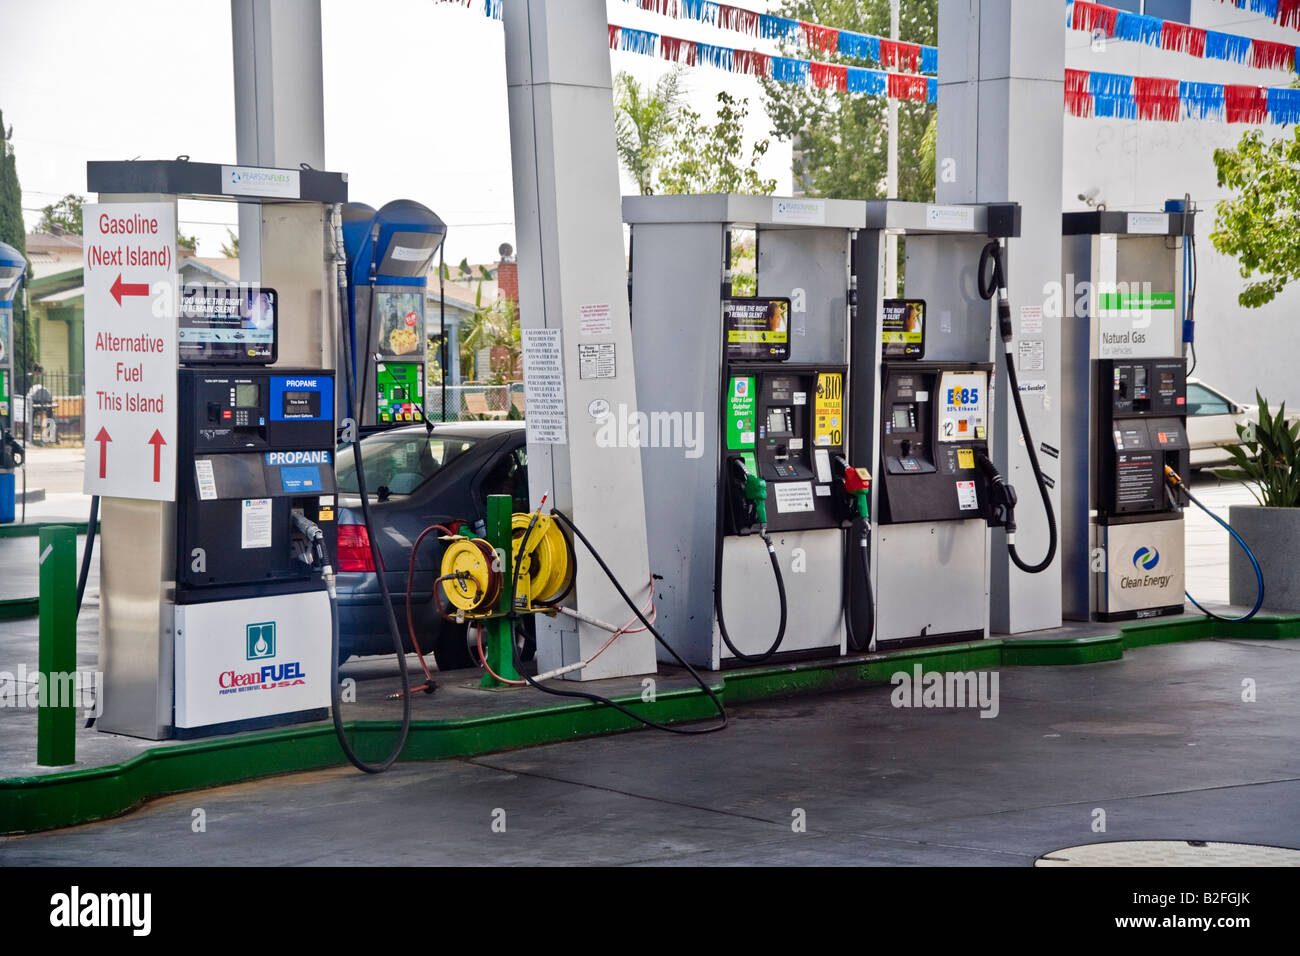 Pumps for propane biodiesel ethanol and natural gas at a San Diego filling station offer an alternative fuel Note - Stock Image